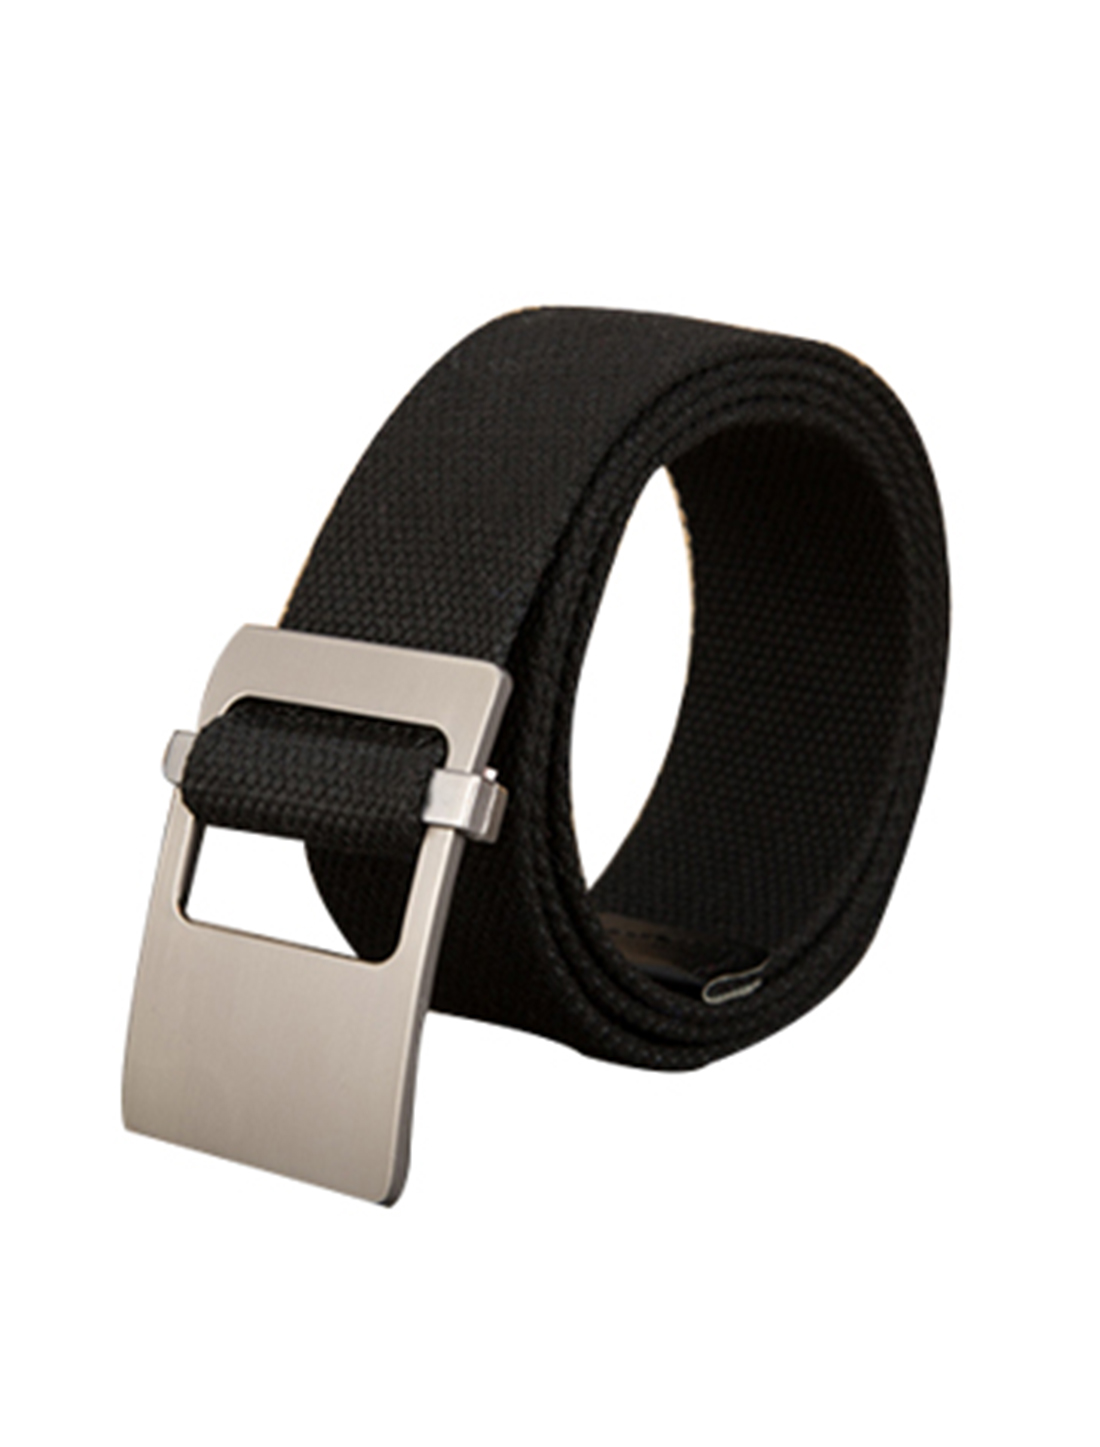 Unisex Canvas Adjustable Holeless Flat Metal Buckle Solid Color Belt Black